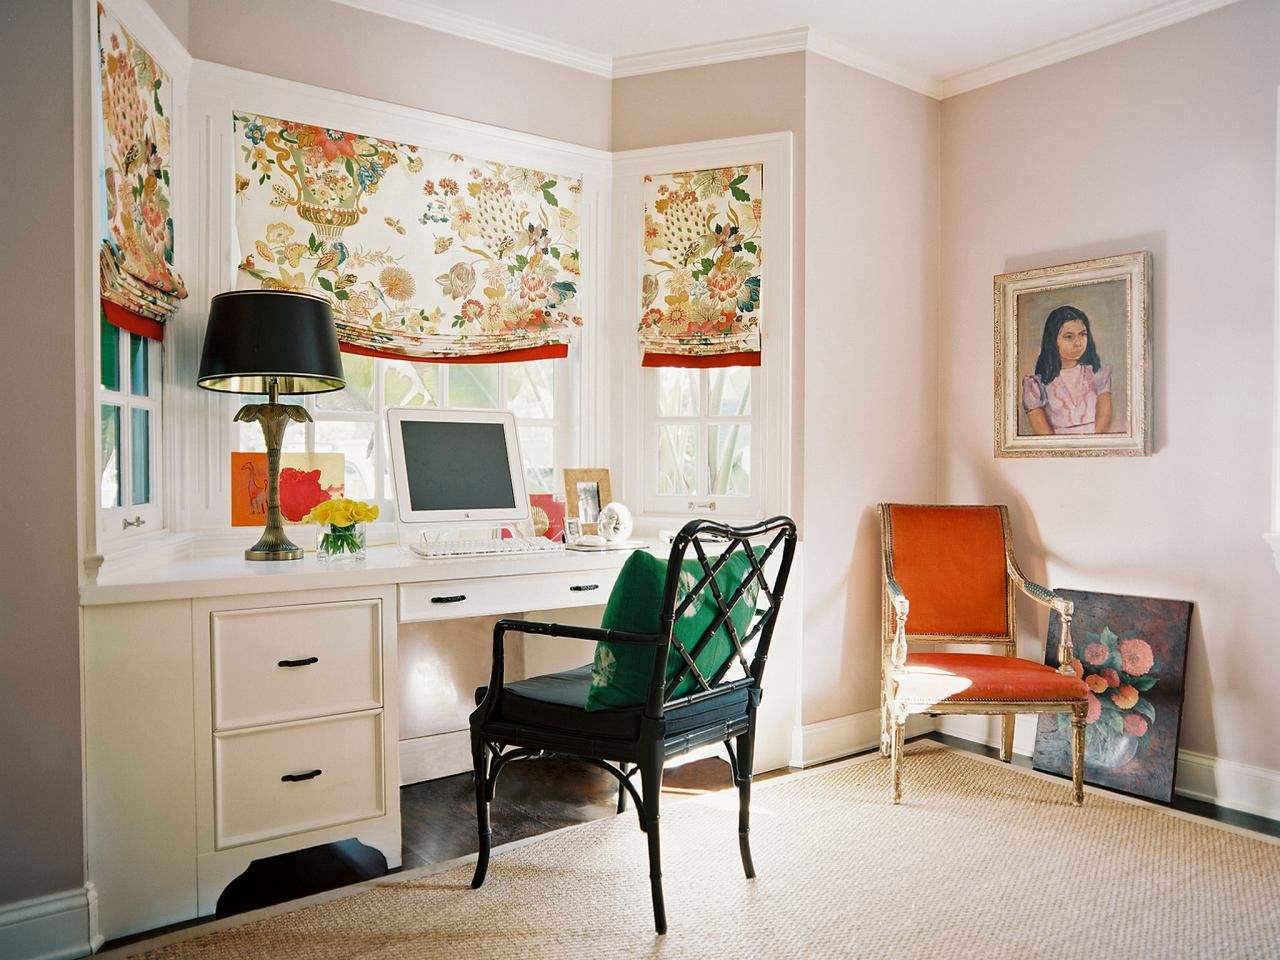 hgtv office design. 11 Pictures Of Organized Home Offices Hgtv Office Design F